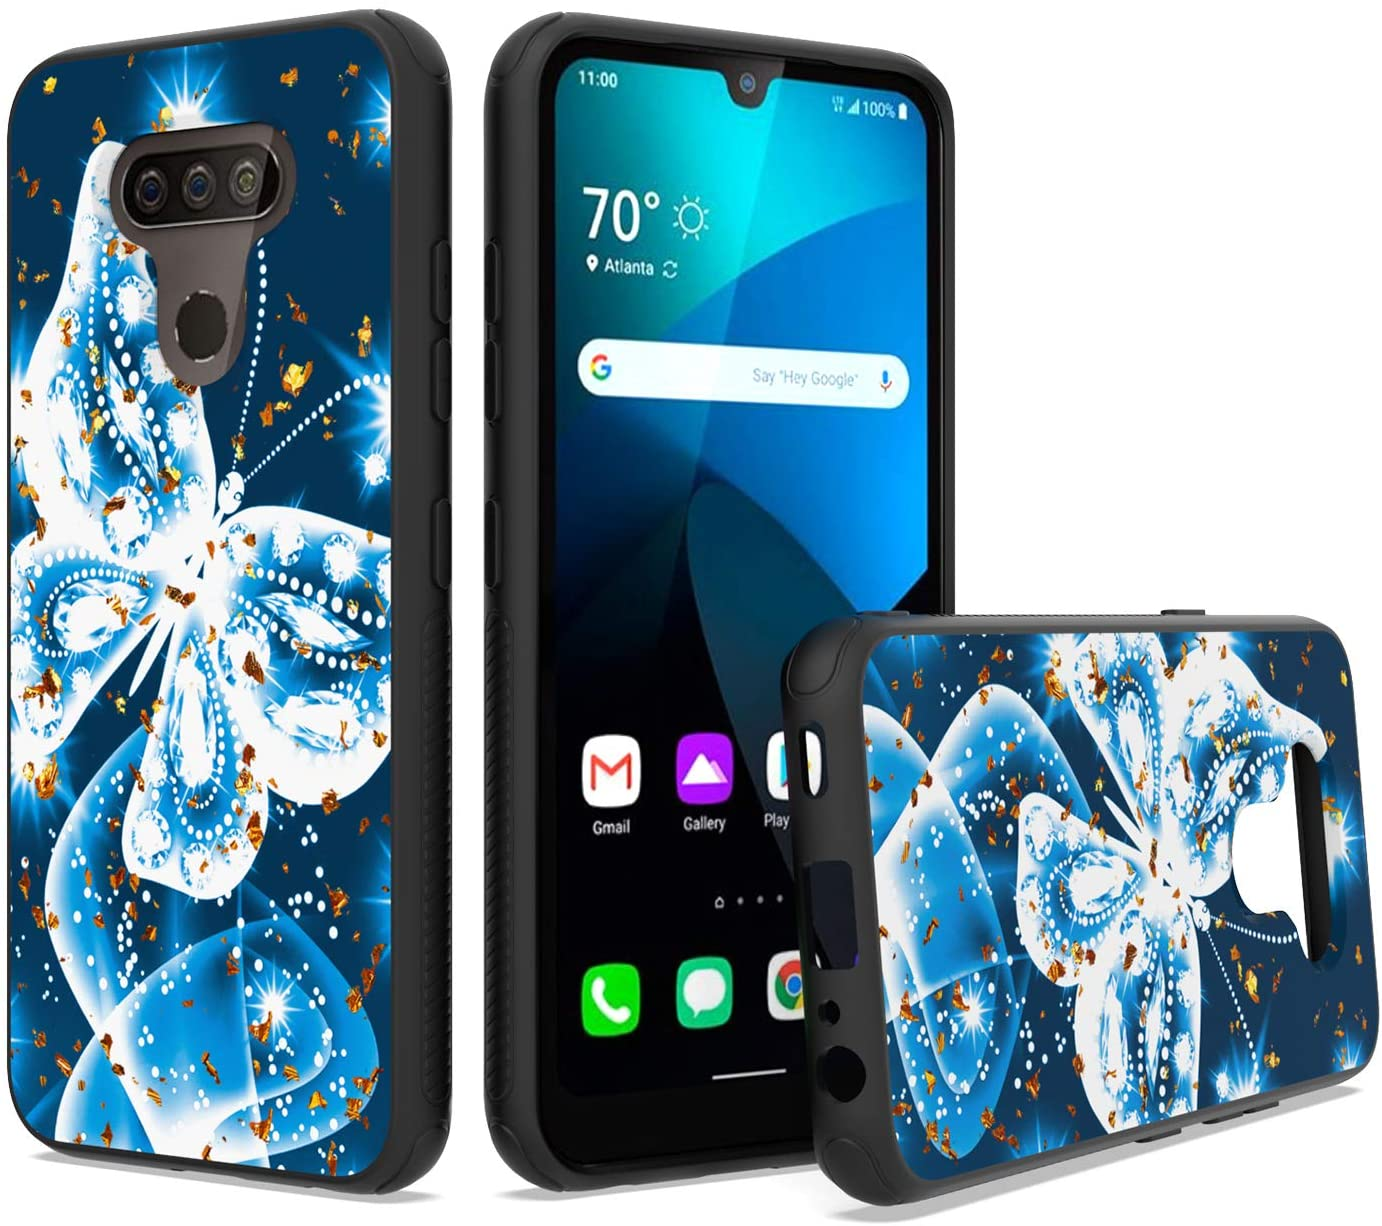 UNC Pro Cell Phone Case for LG Harmony 4/ LG Xpression Plus 3, Blue Butterfly Gold Foil Embedded Dual Layer TPU Hybrid Case, Shockproof Bumper Protective Cover